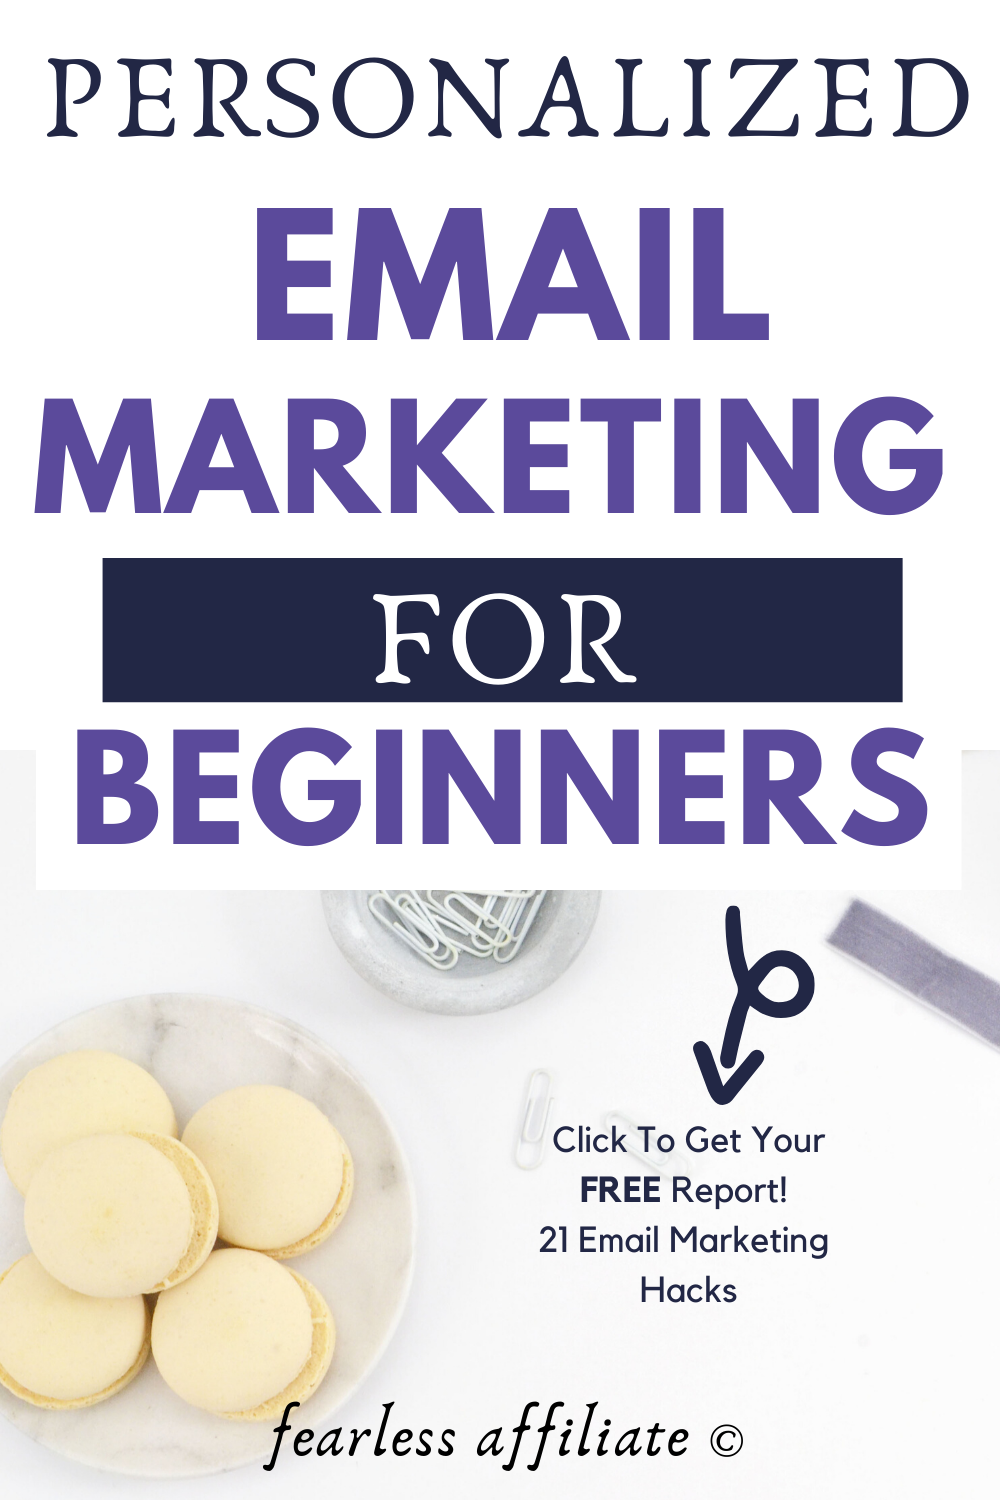 Personalized Email Marketing for Beginners